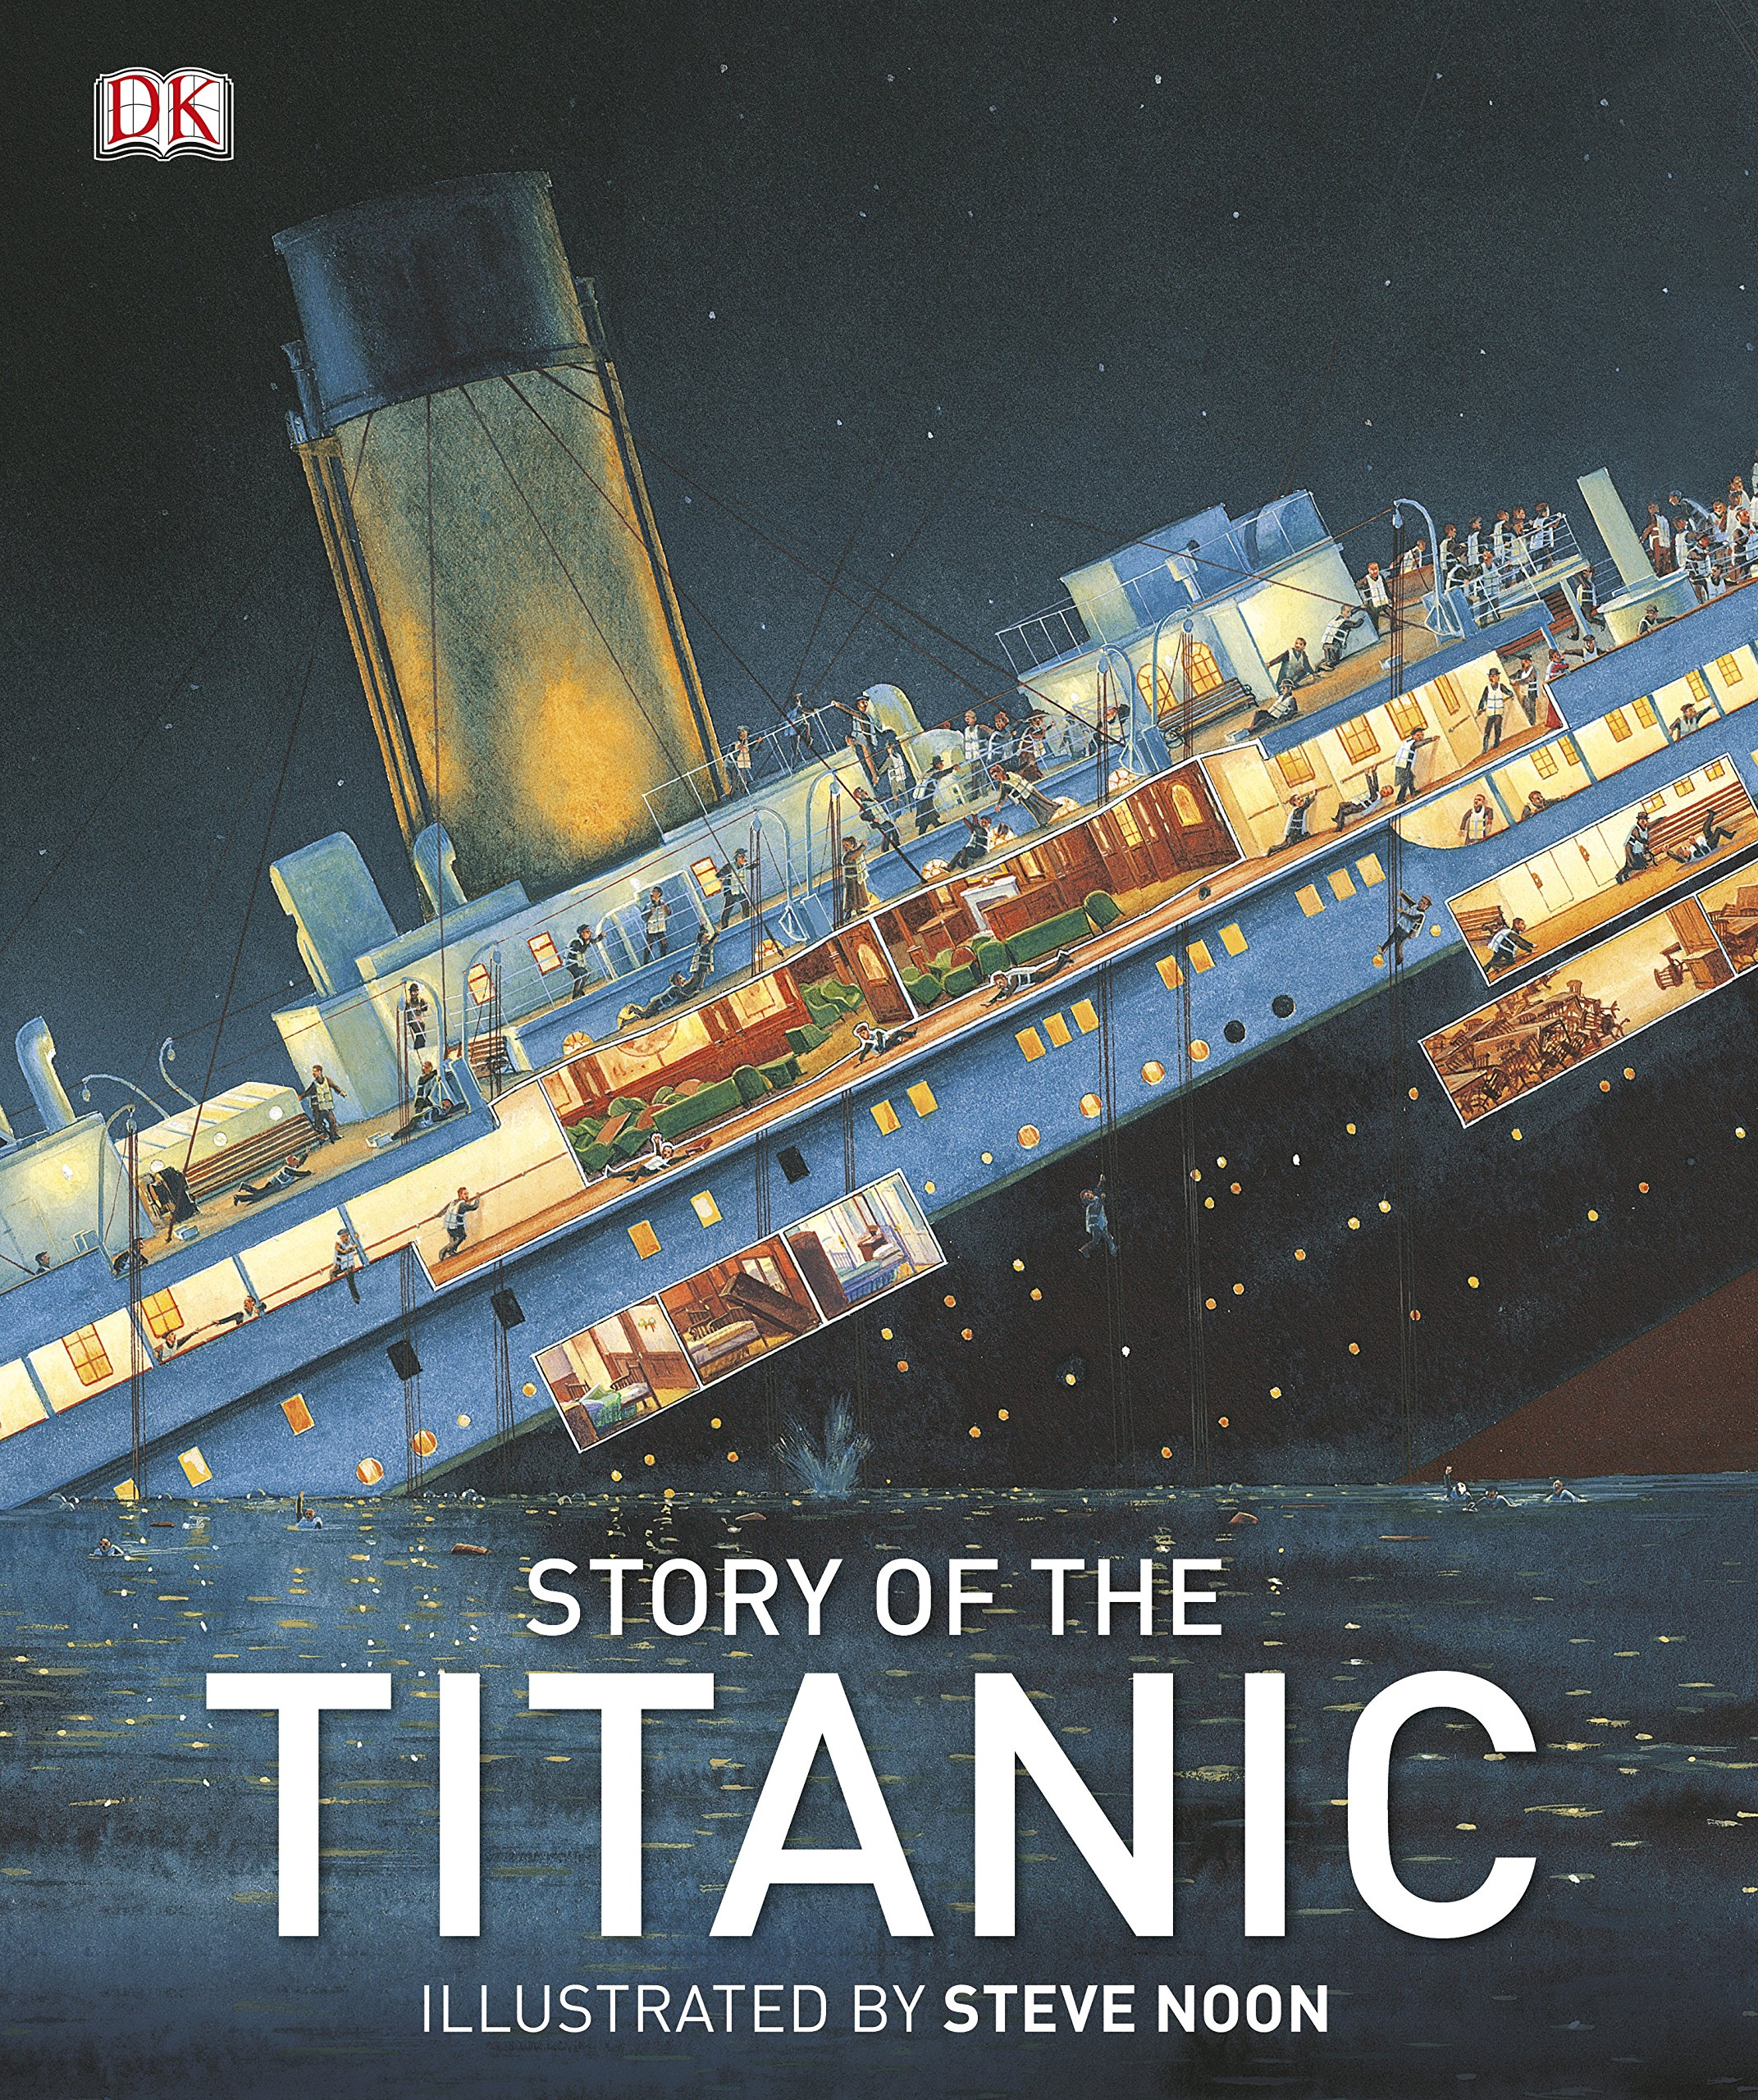 Story of the Titanic (DK History): Amazon.co.uk: DK, Steve Noon ...